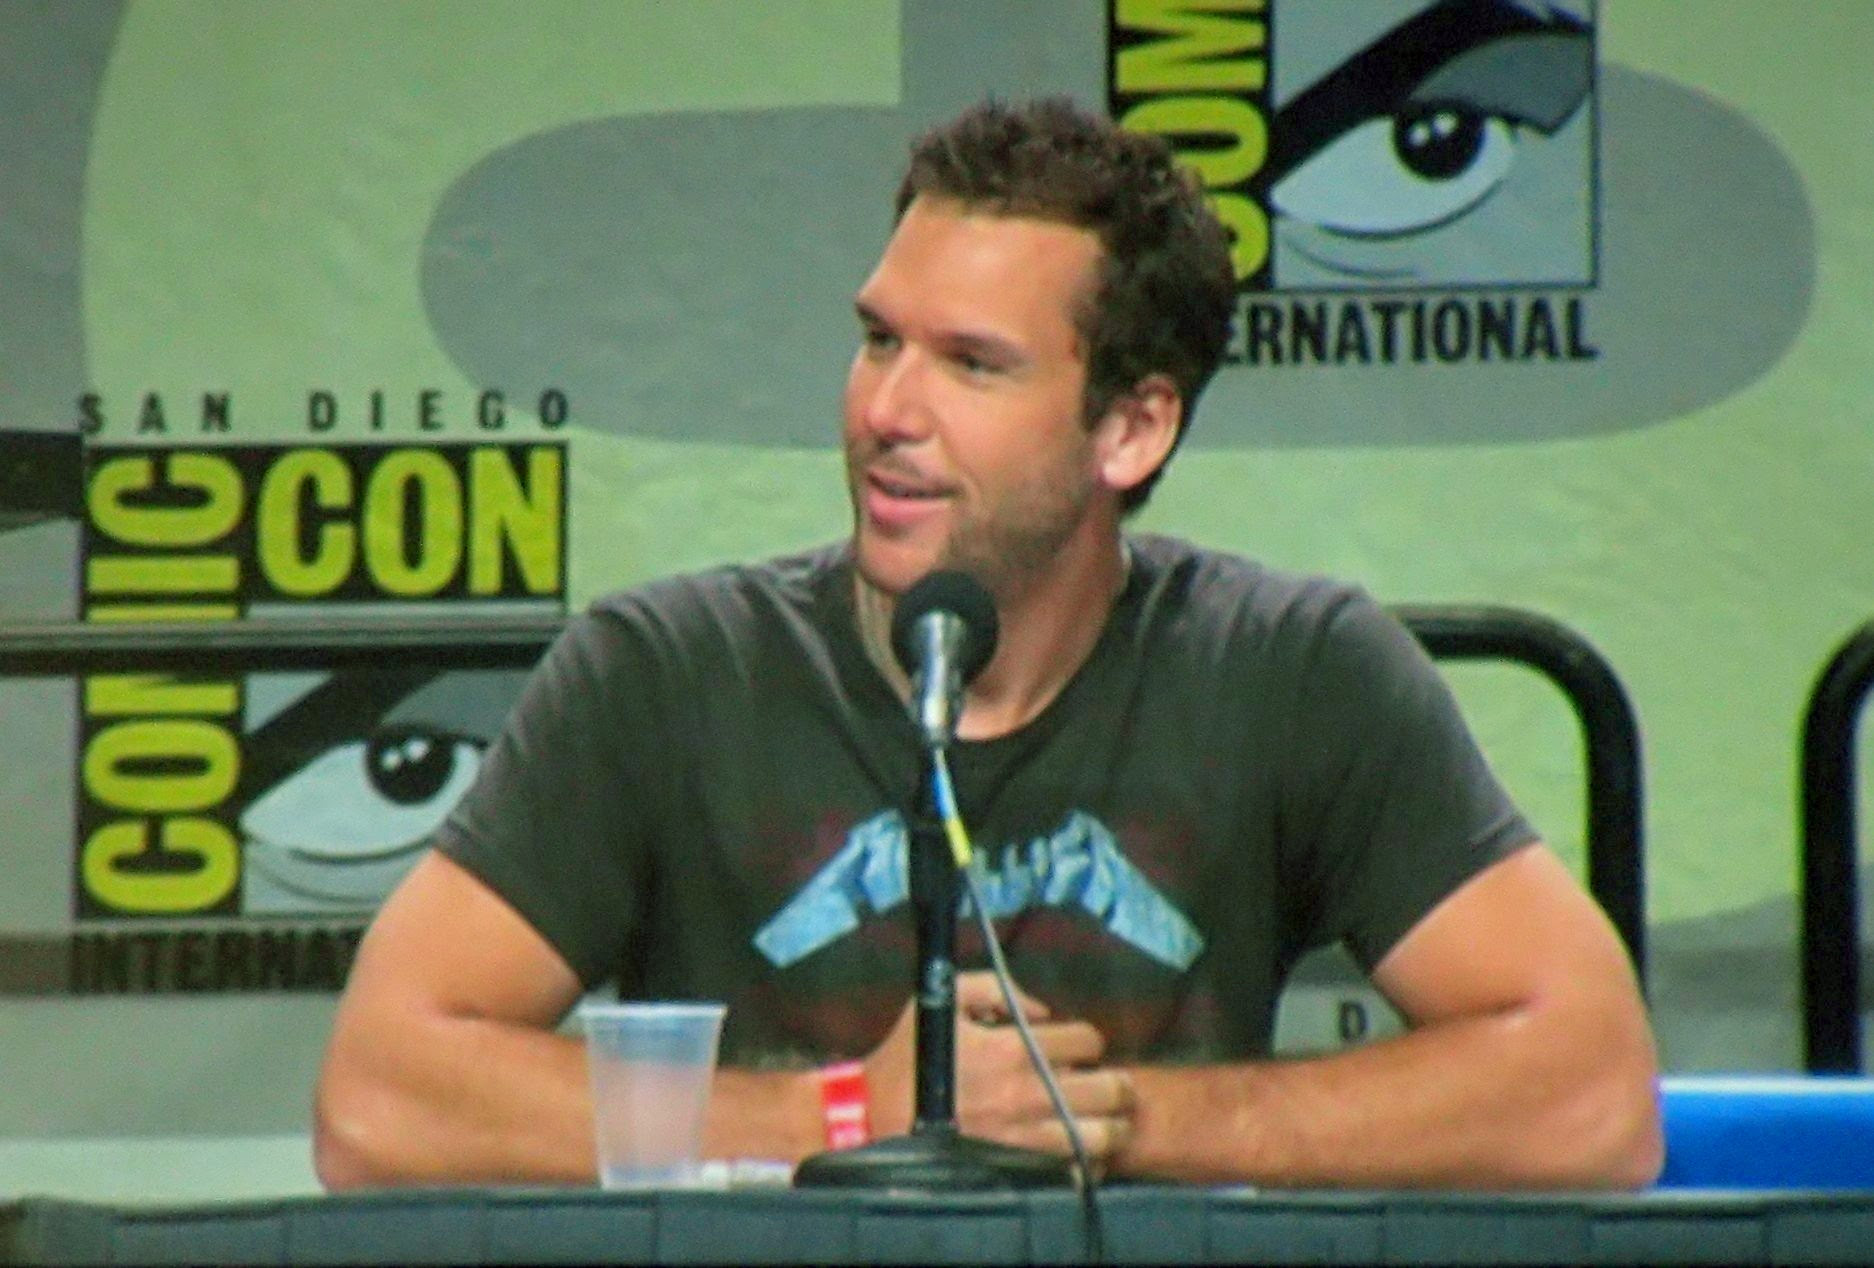 Breakup Watch: Dane Cook and the Green Knight